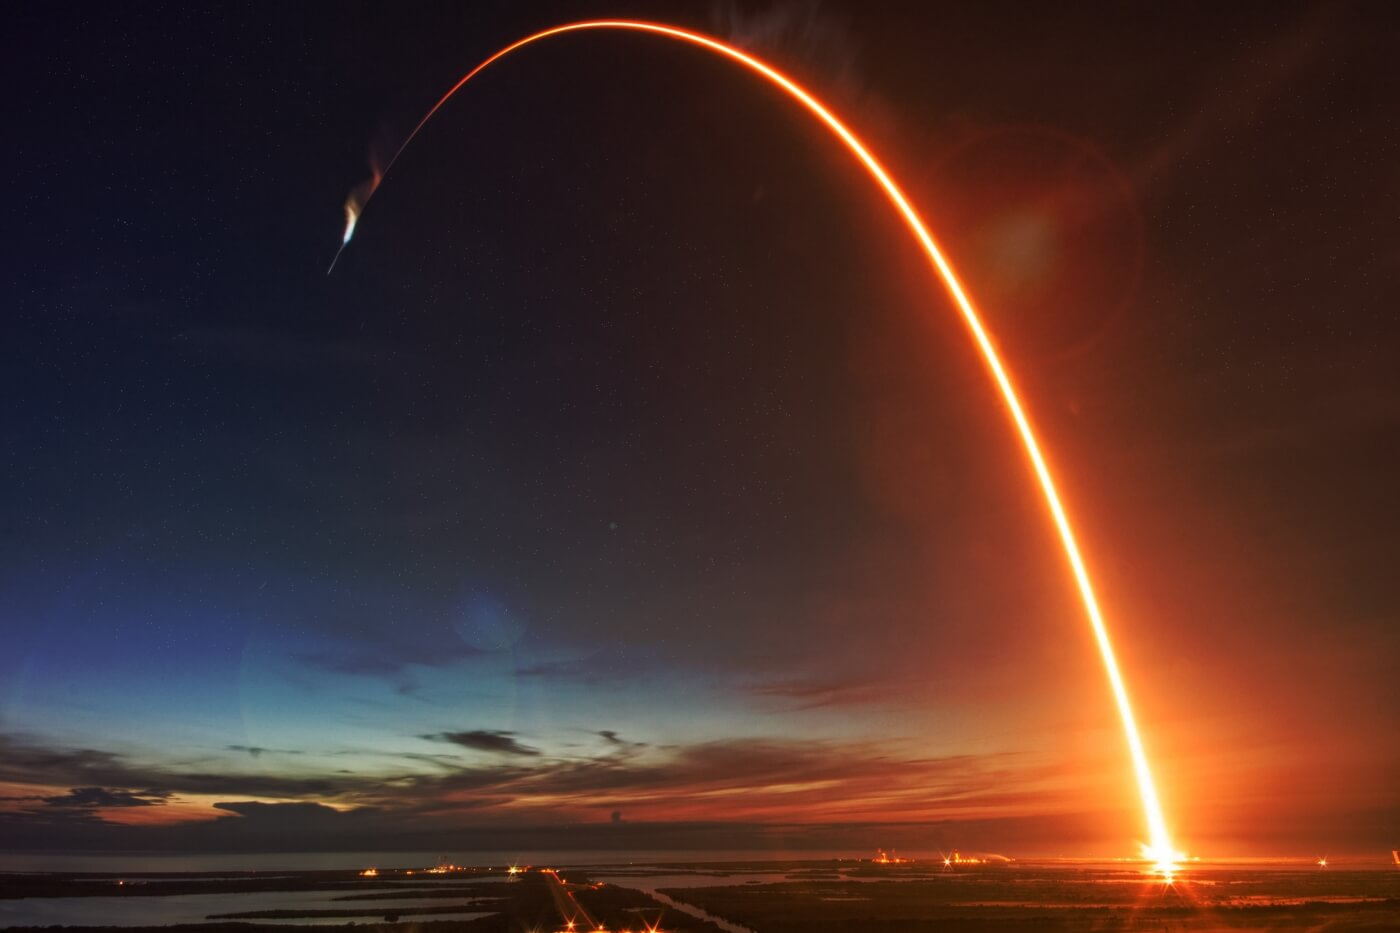 SpaceX's first crewed flight could happen on May 7